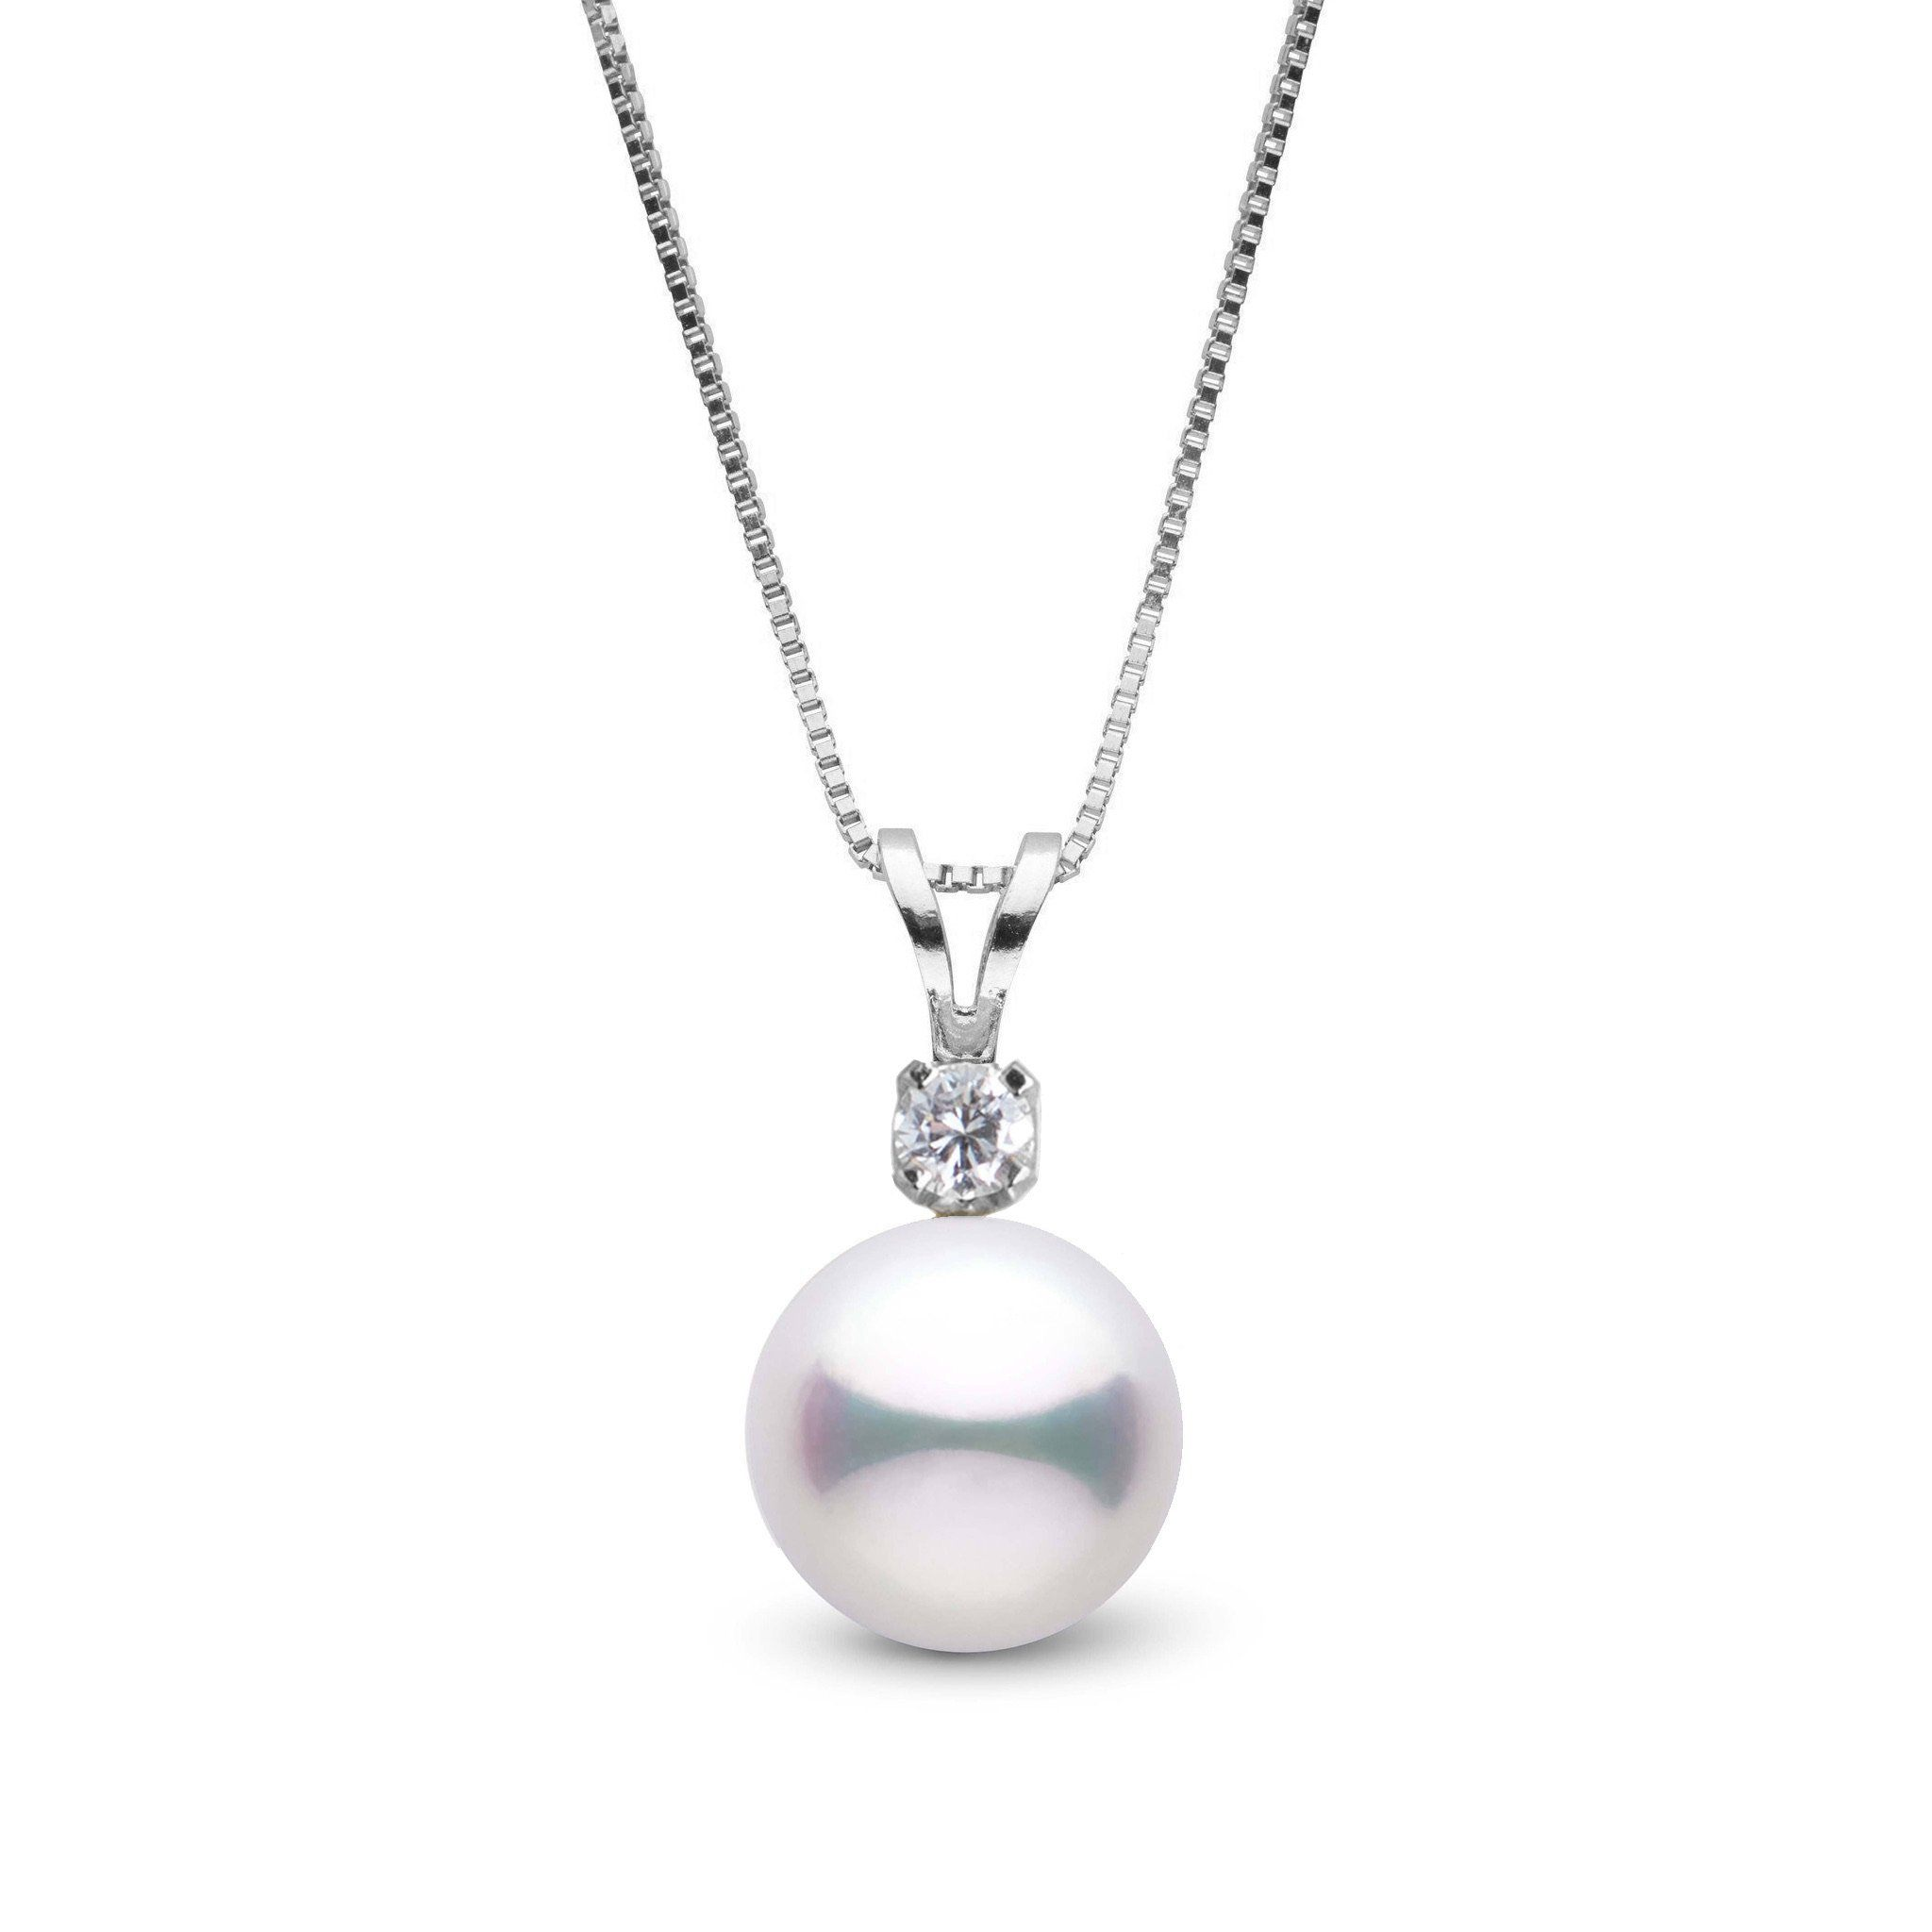 Grand Harmony Collection 9.0-9.5 mm Akoya Pearl & Diamond Pendant